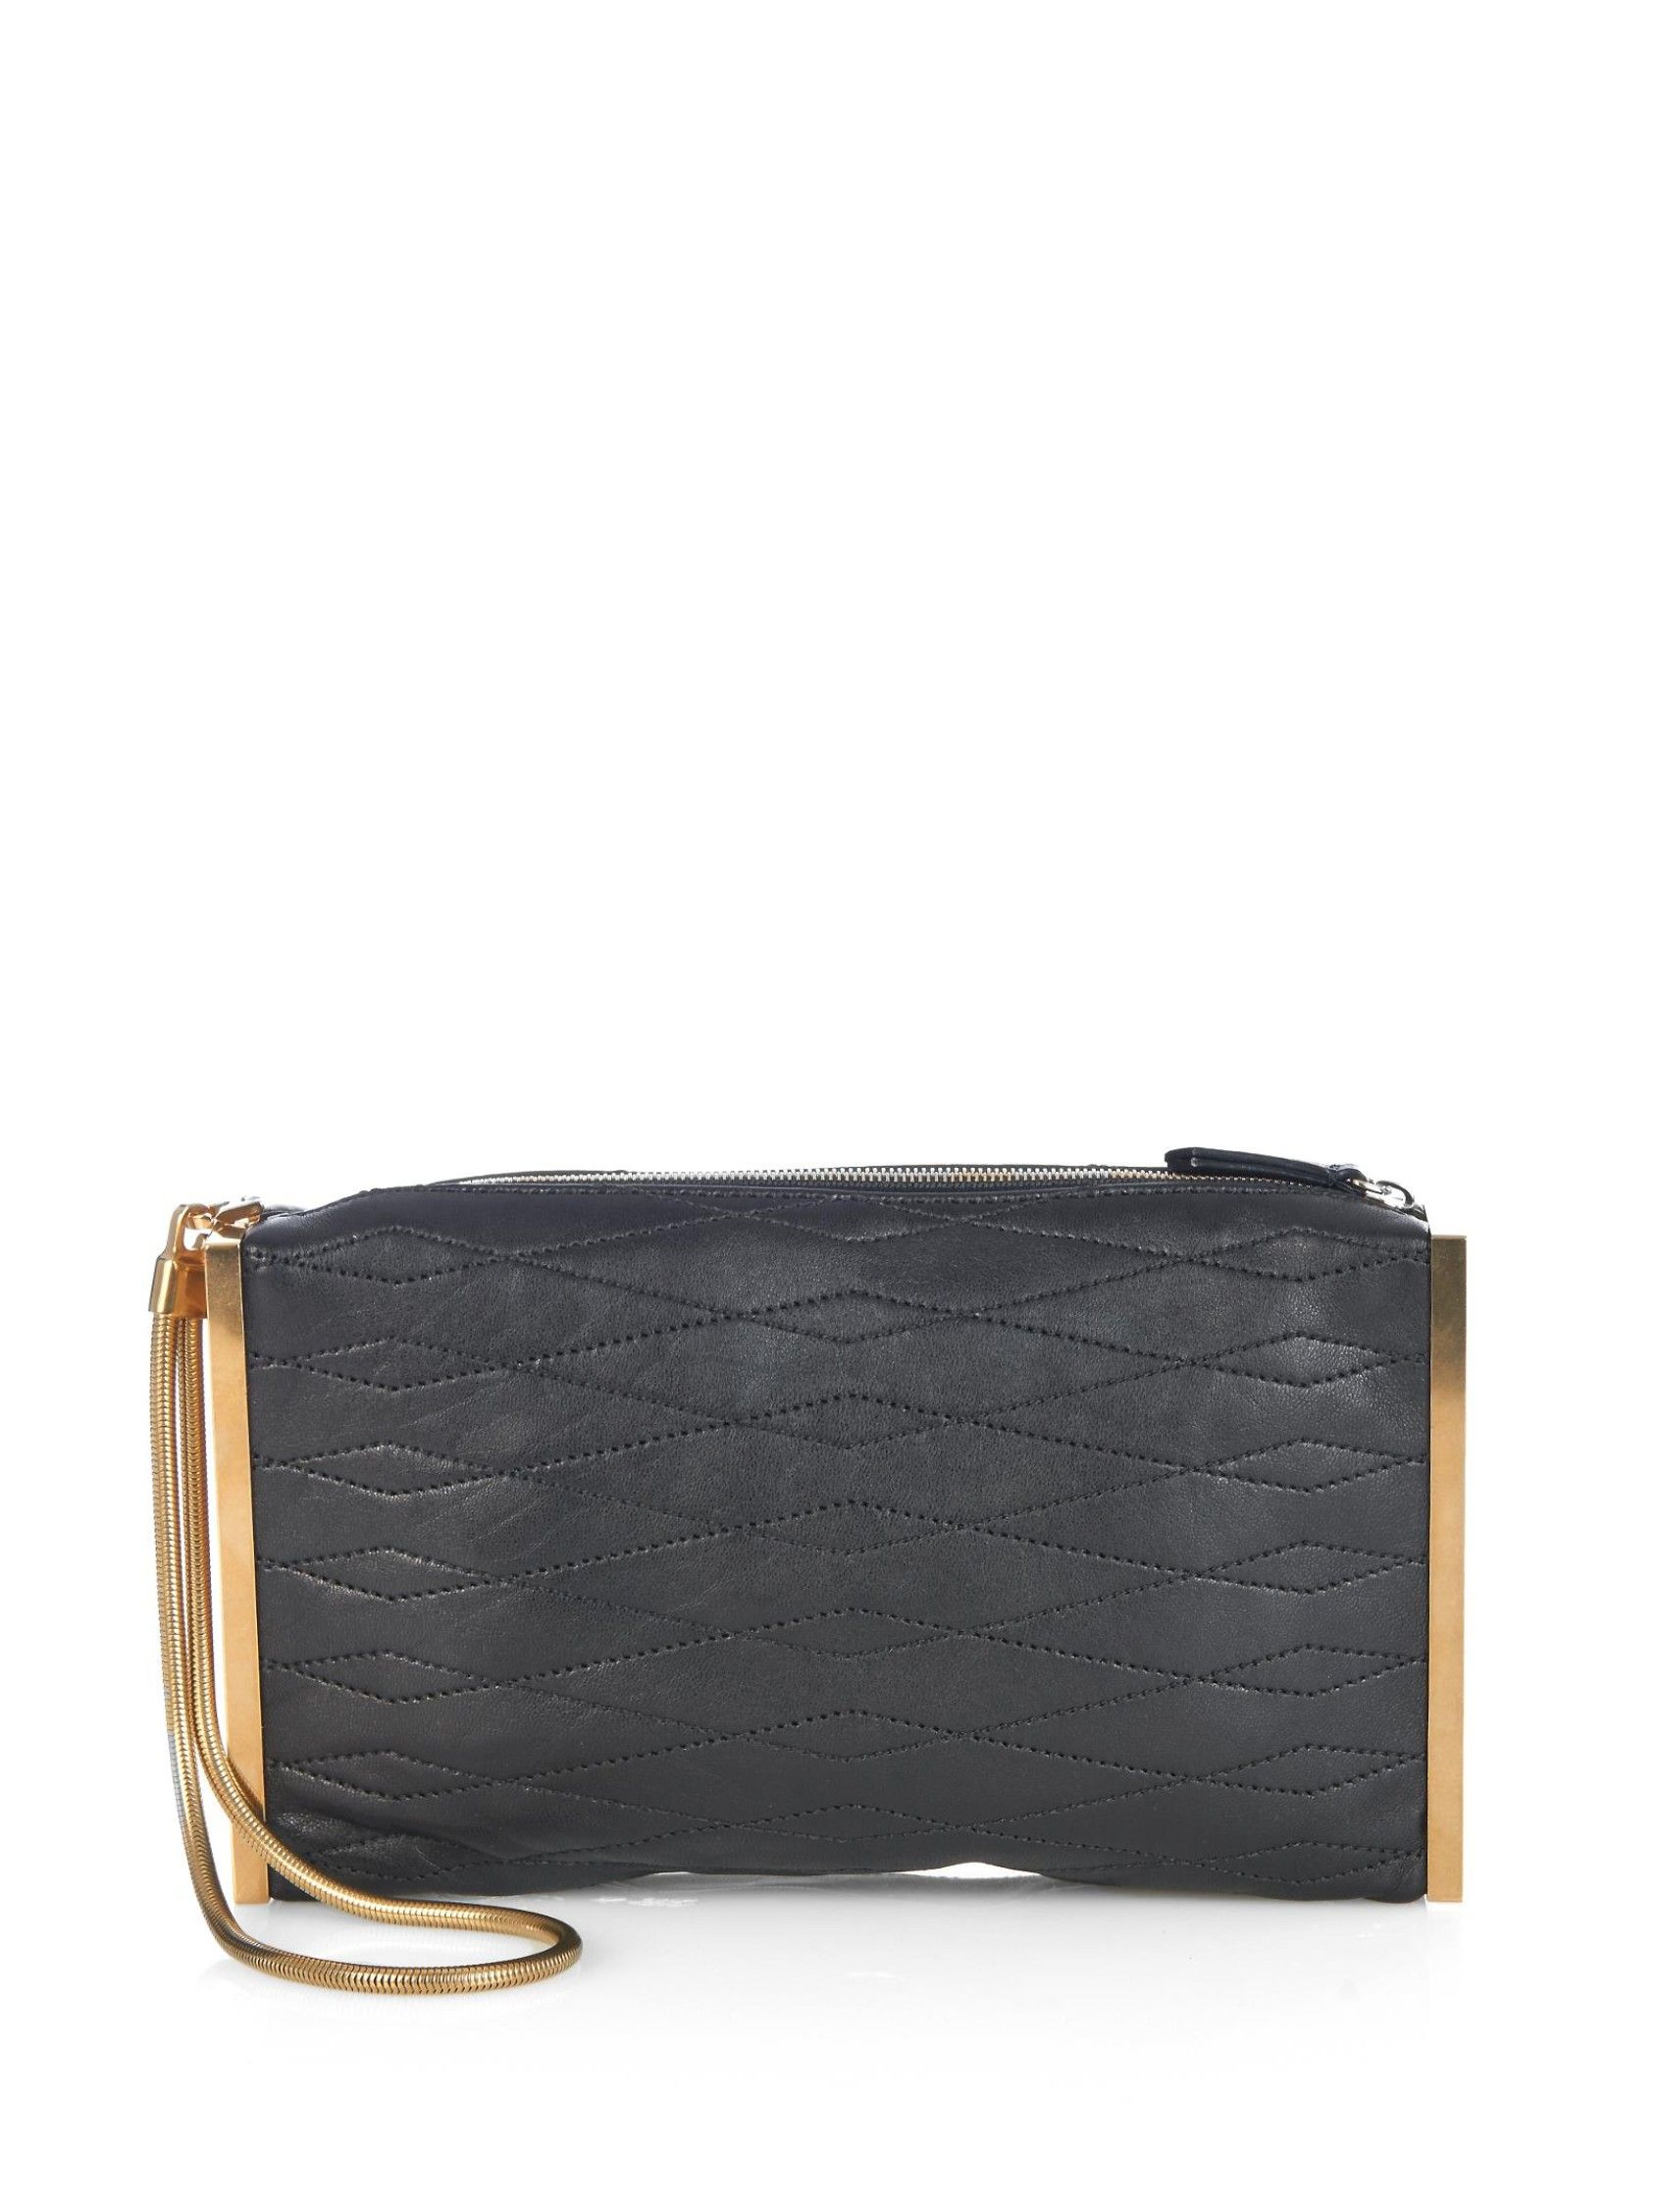 Quilted-leather clutch | Lanvin | MATCHESFASHION.COM UK